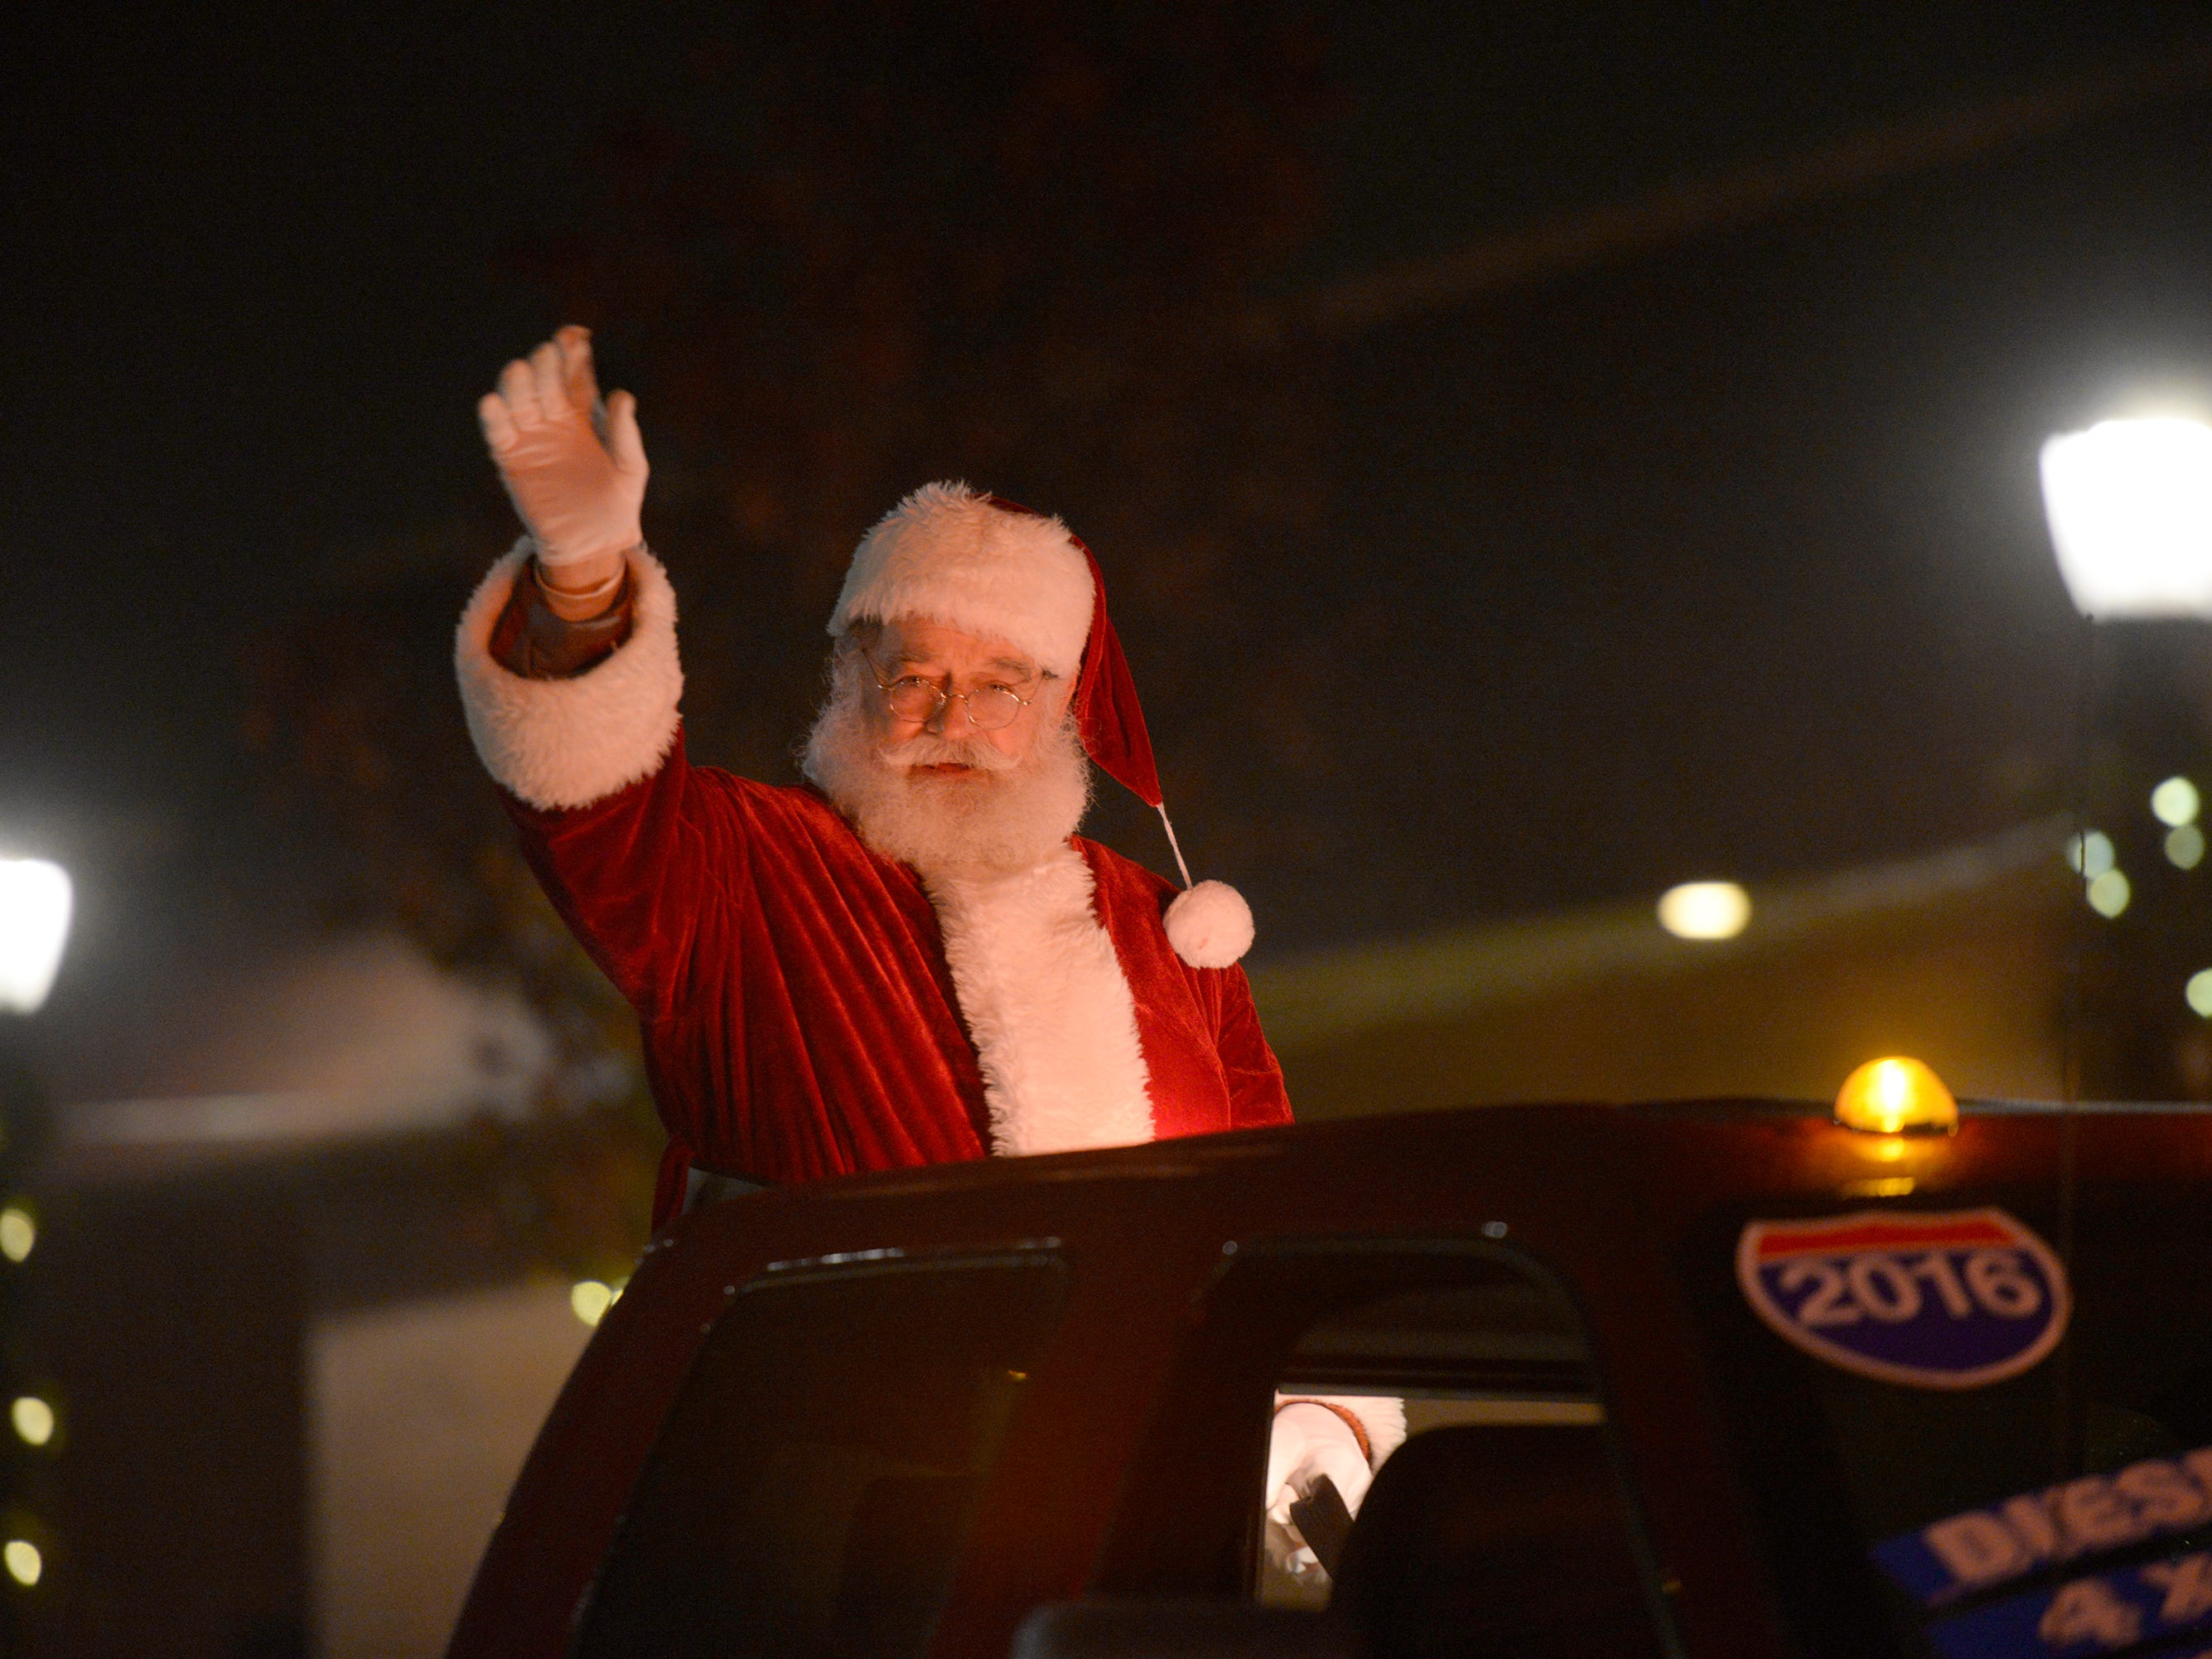 The Big Guy makes his appearance during the Lighted Parade as part of South Lyon's Cool Yule celebration Dec. 1, 2018.